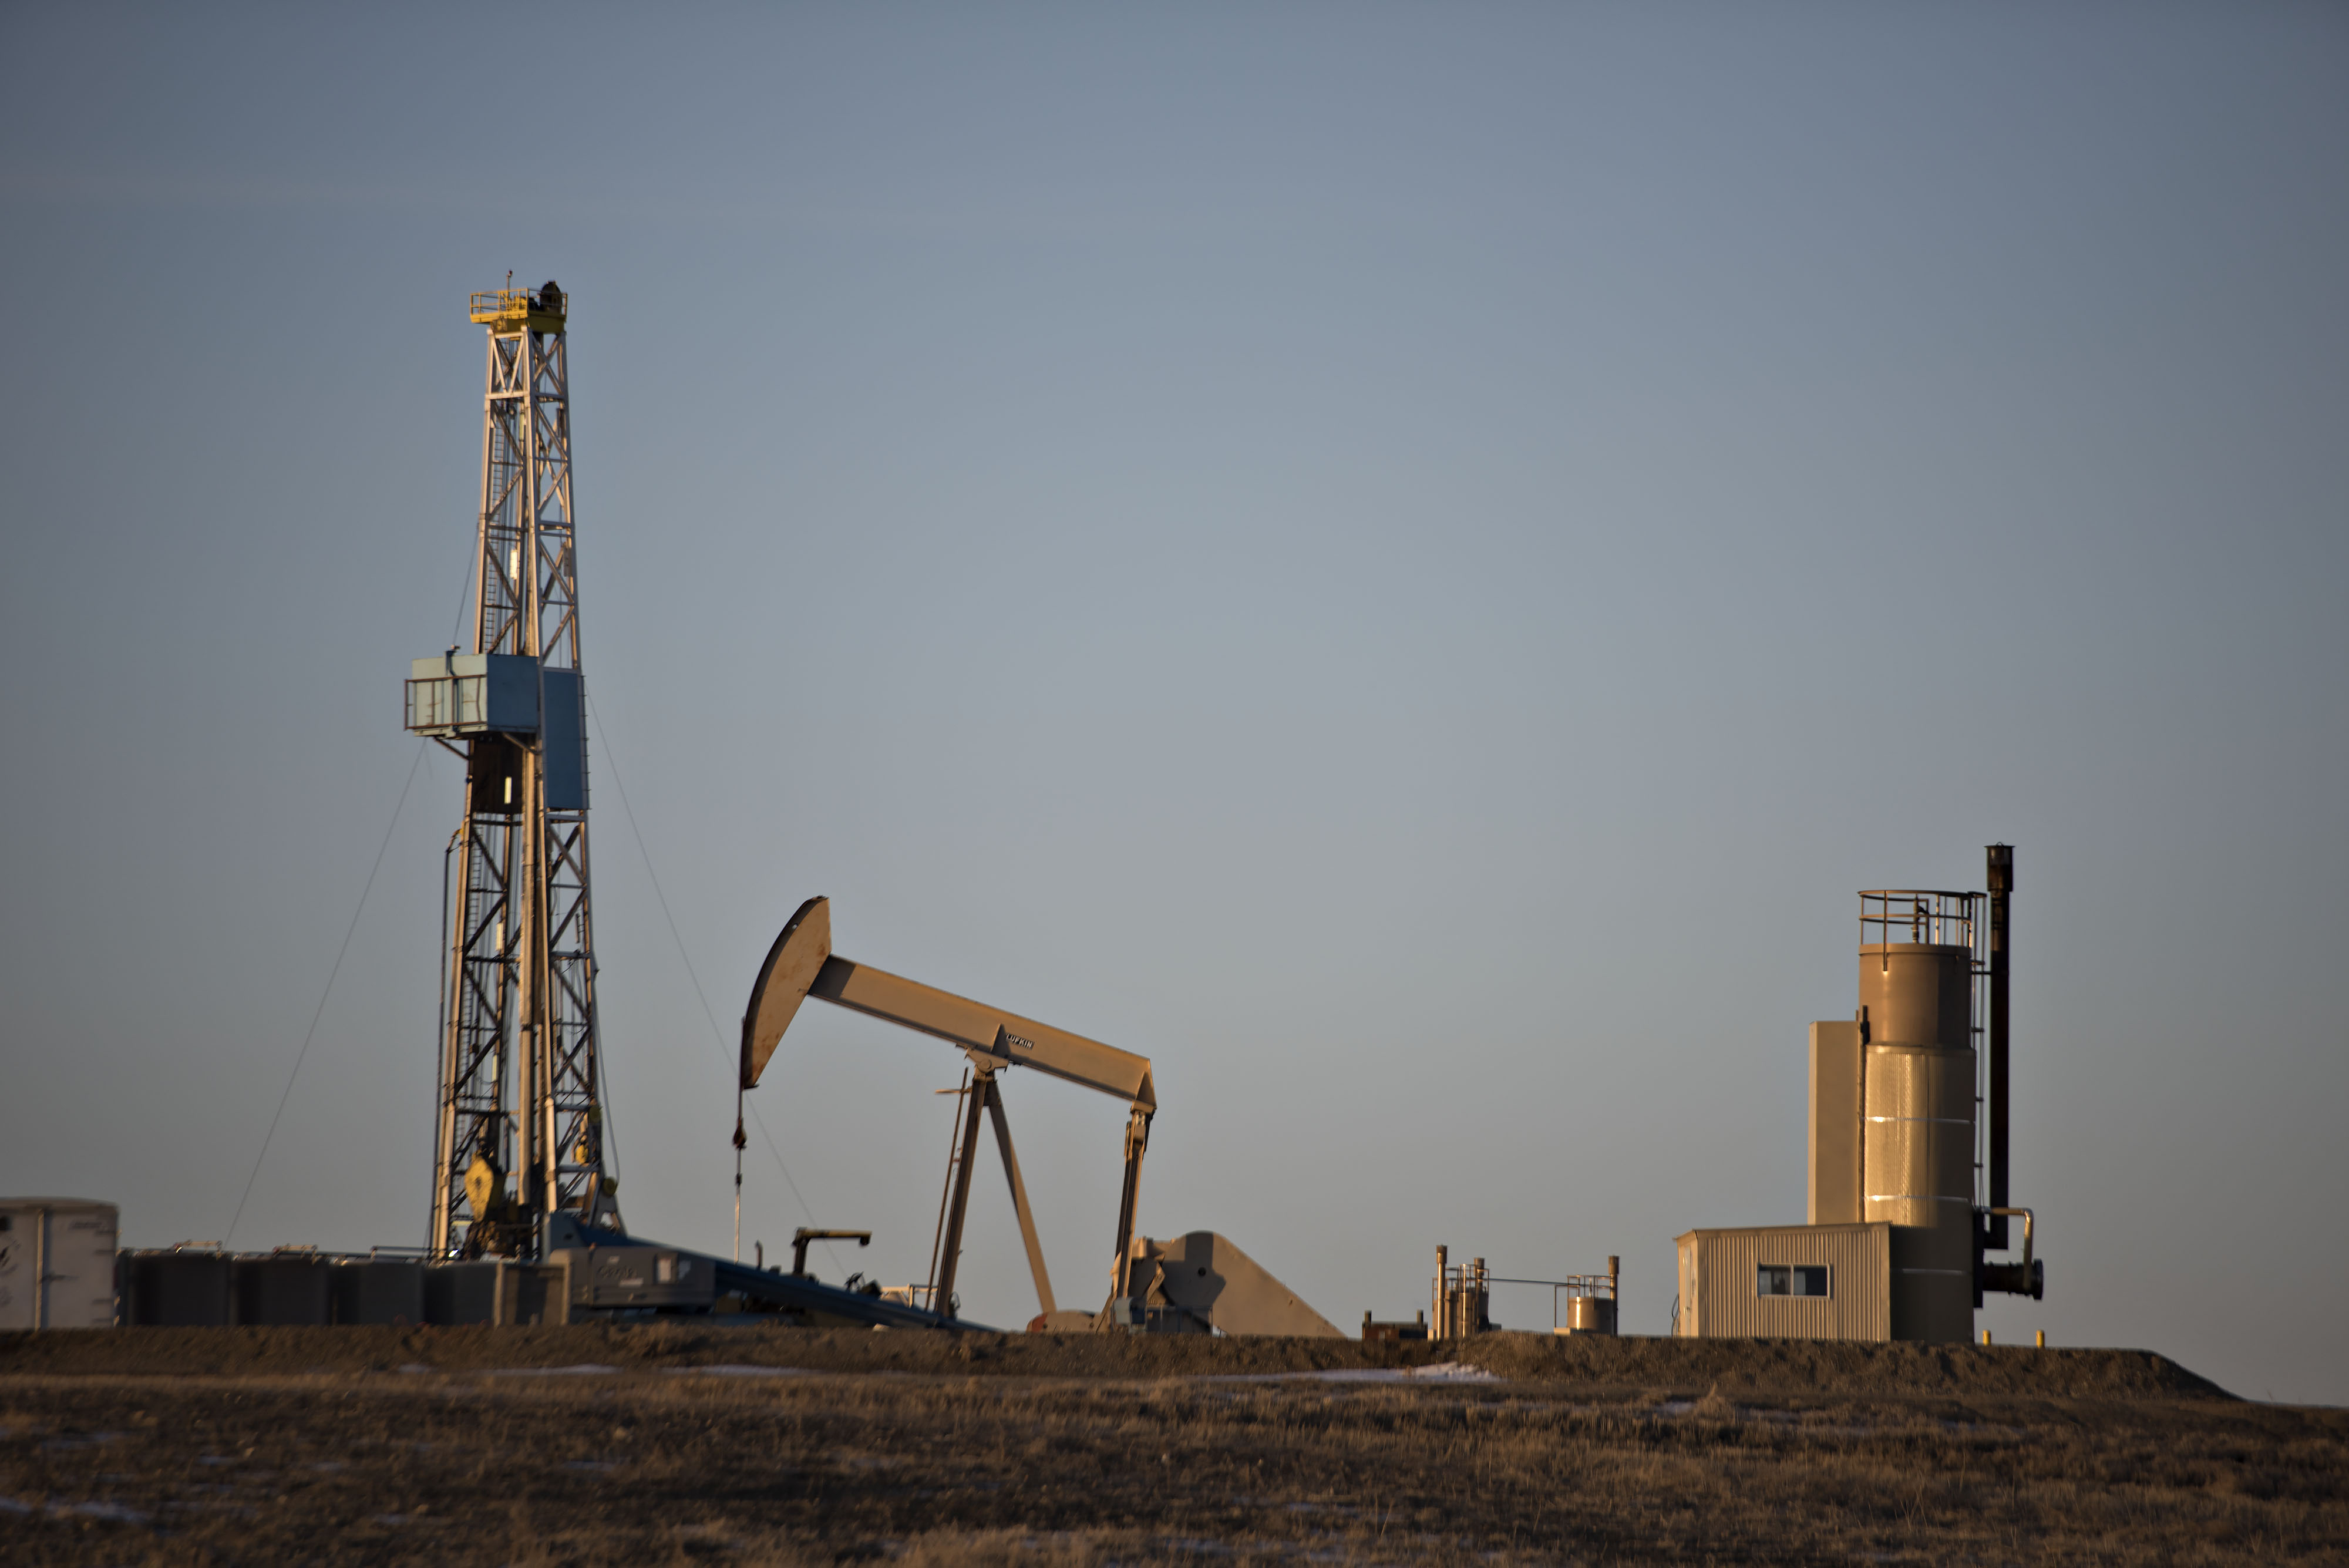 Undefeated Oilfield Accident Lawyer Investigates Williston, ND Drilling Rig Accident Death.